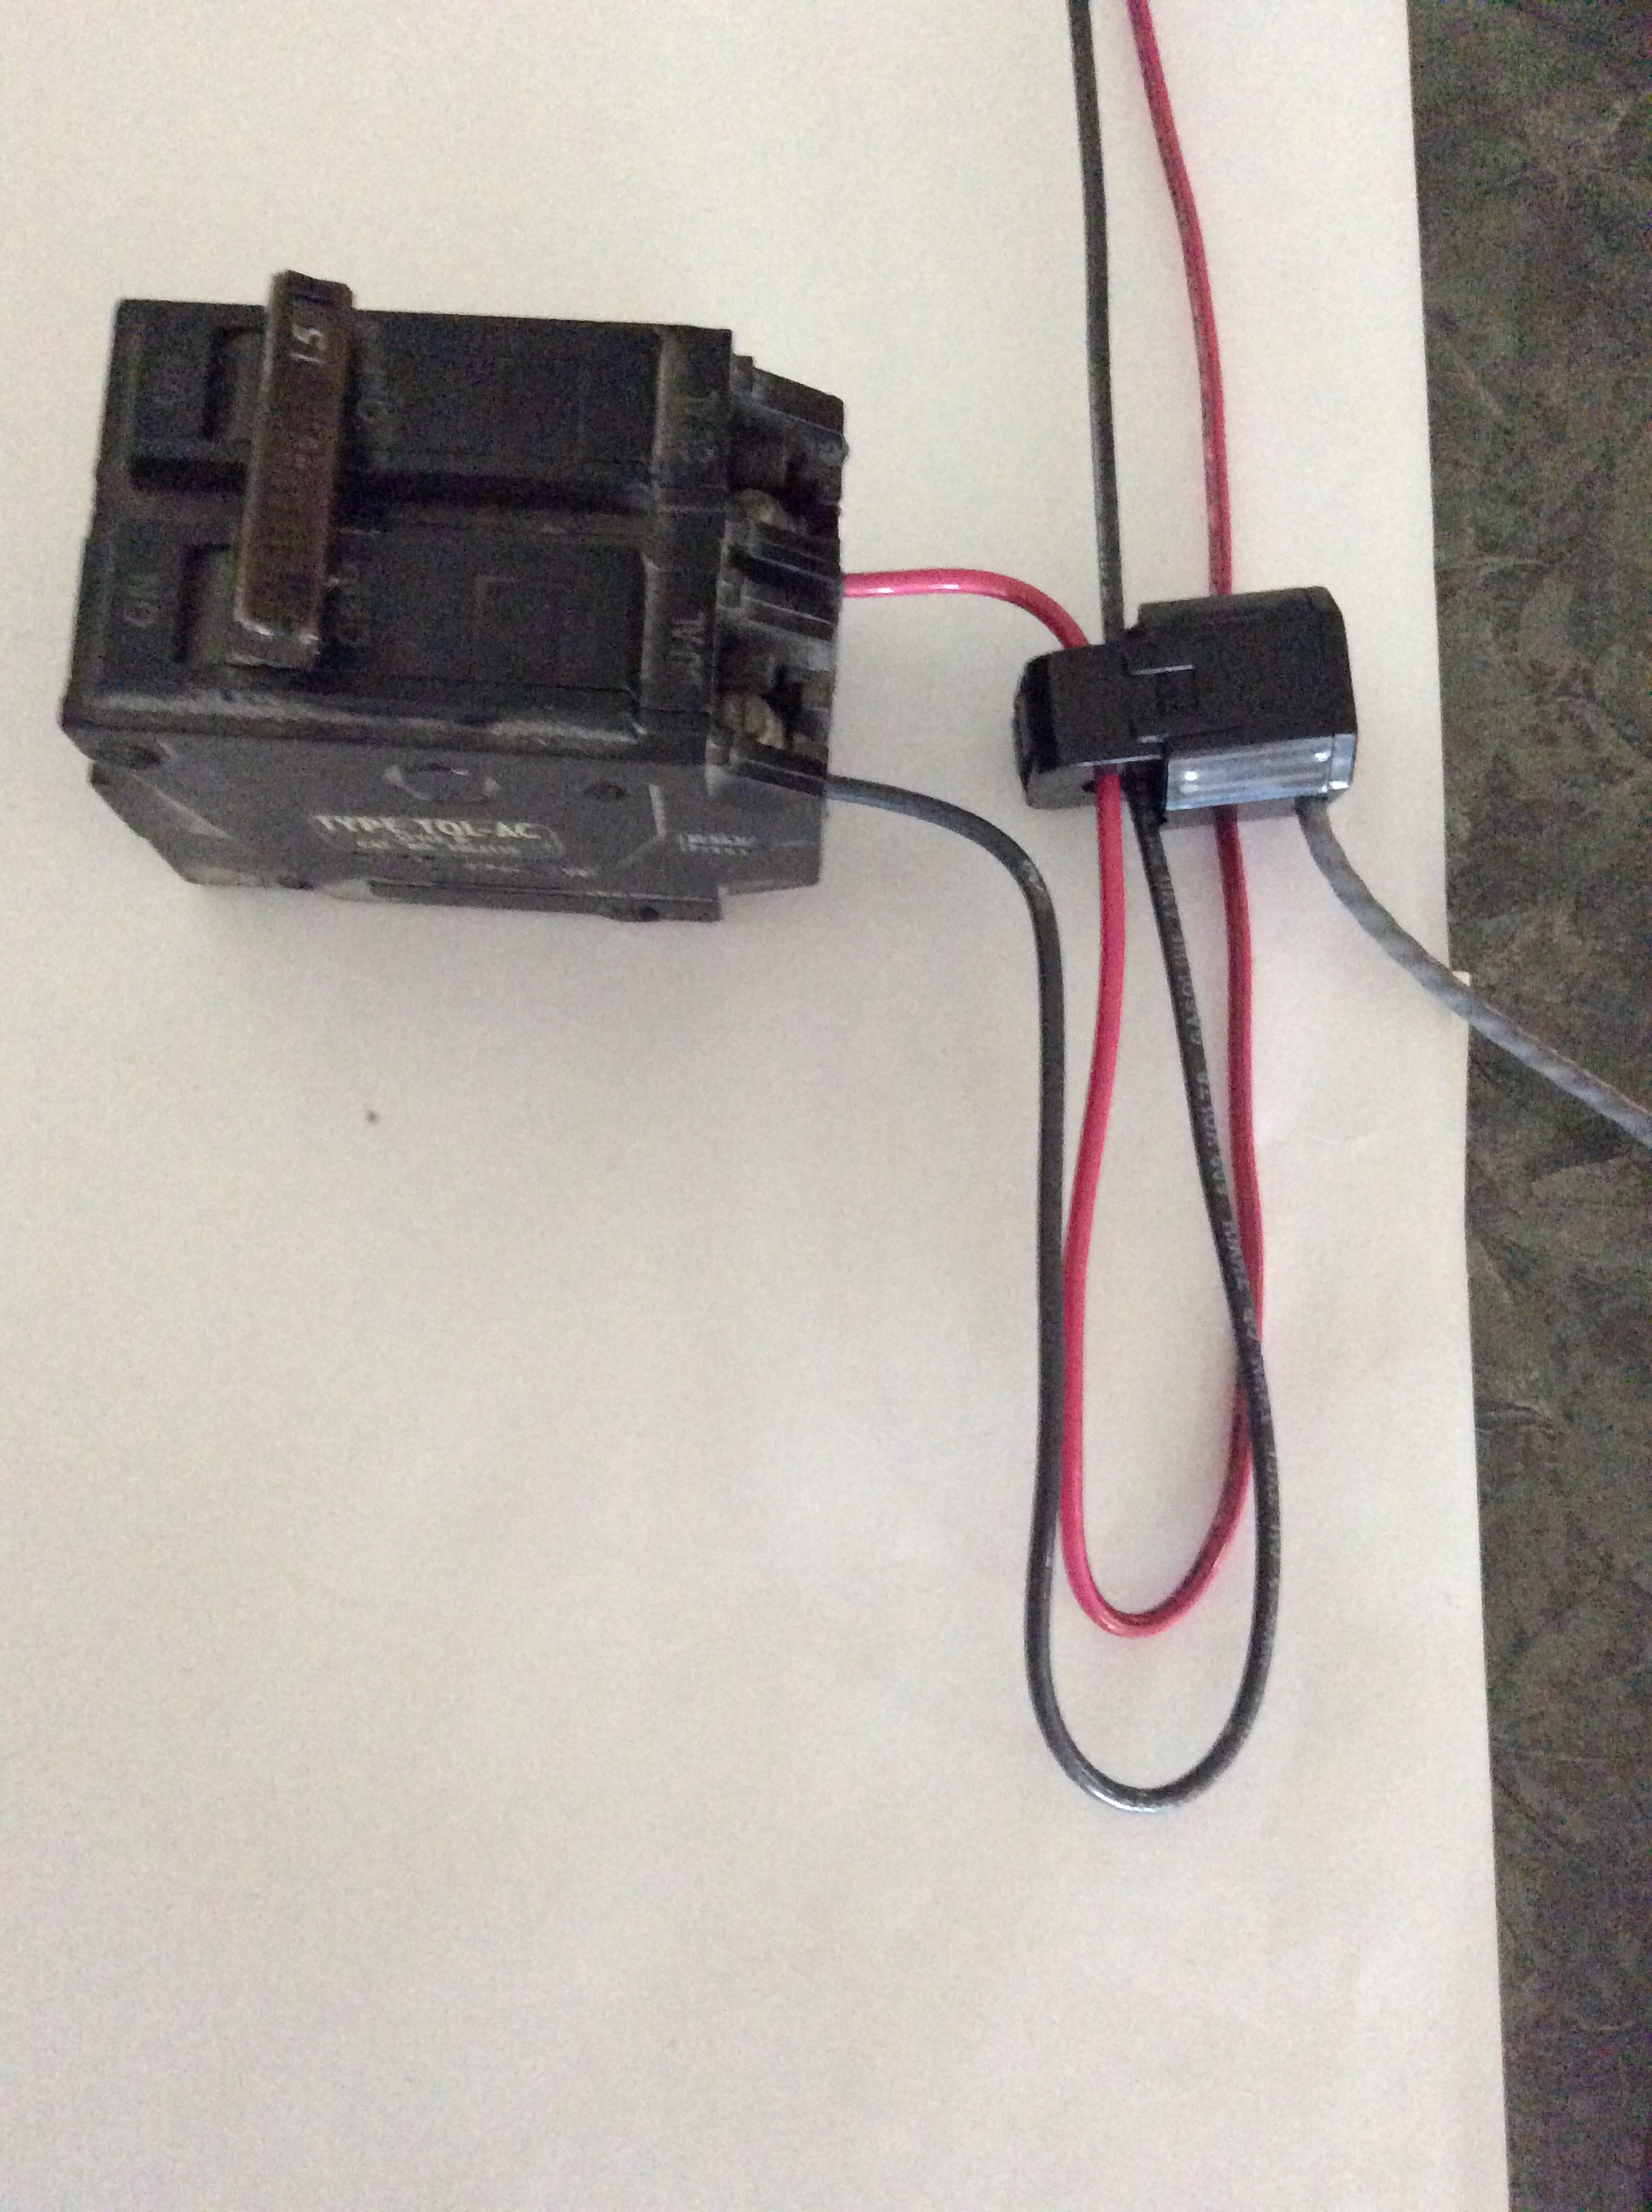 Ct Sensor Amps Questions Iotawatt User Community Wiring An Outlet Backwards This Is Common Practice Among Many Electricians I Bring It Up Because Really Facilitates Connecting A To 240v Circuit With One Conductor Reversed